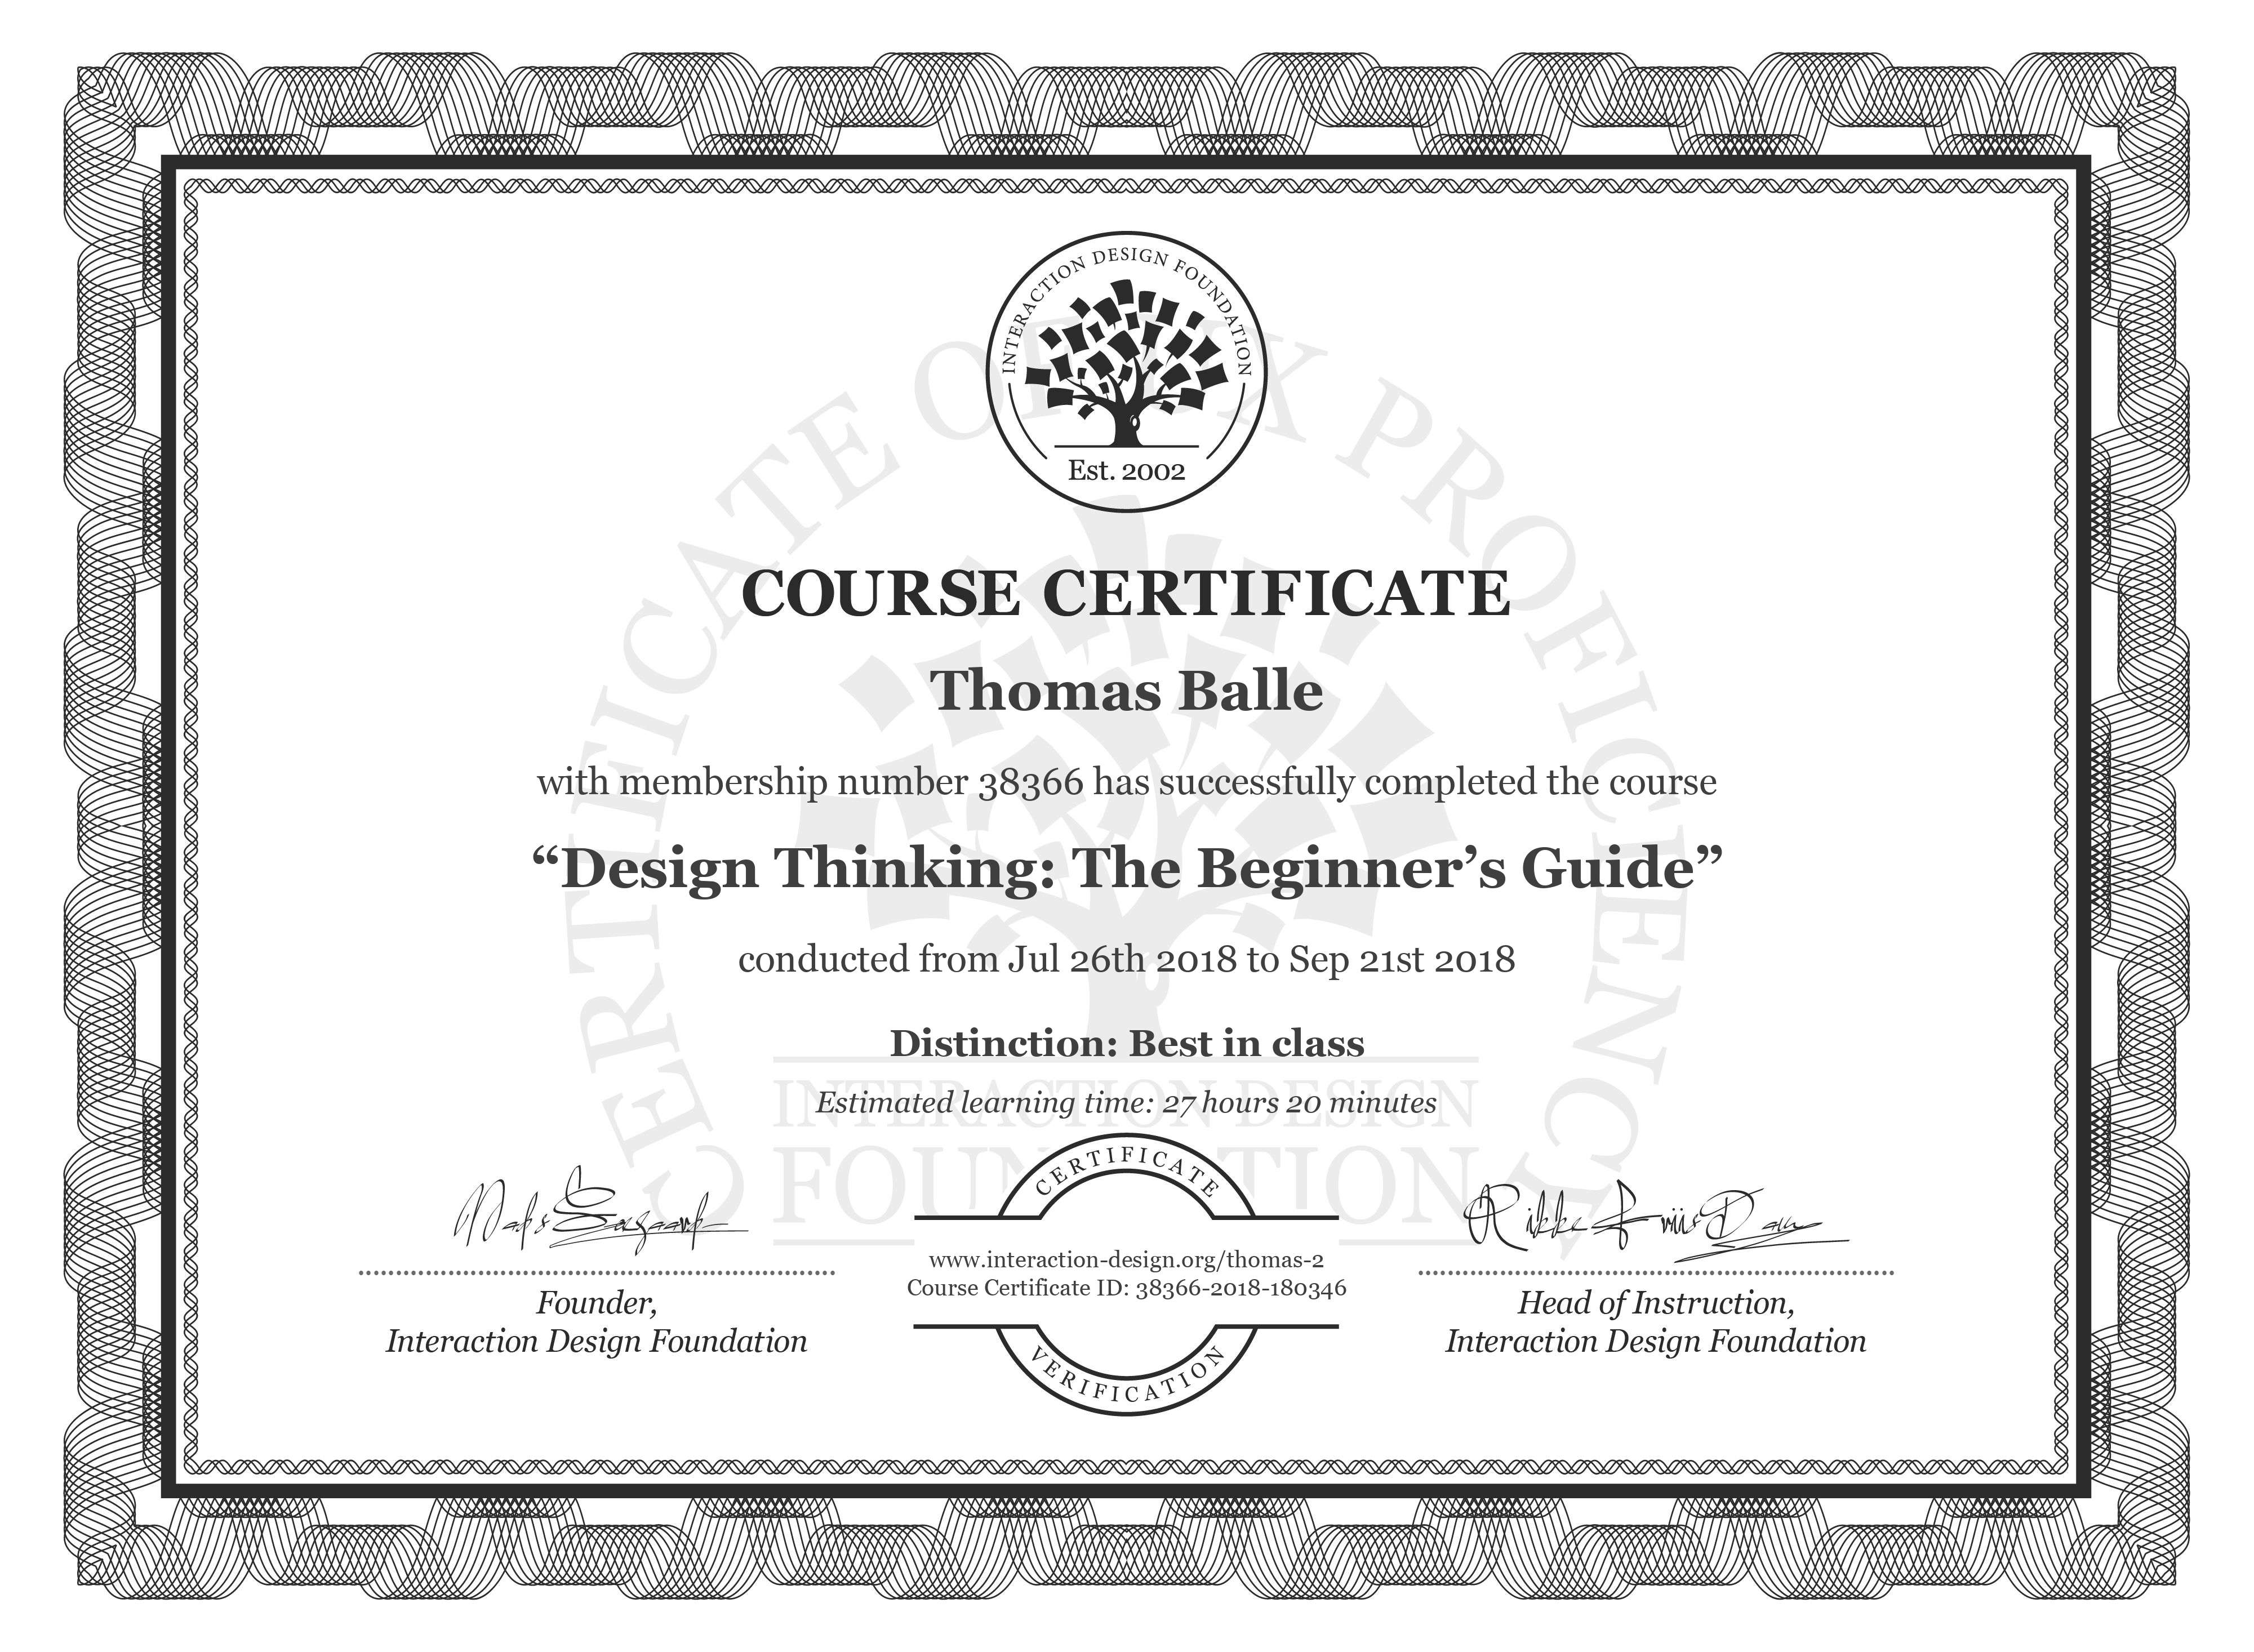 Thomas Balle's Course Certificate: Design Thinking: The Beginner's Guide